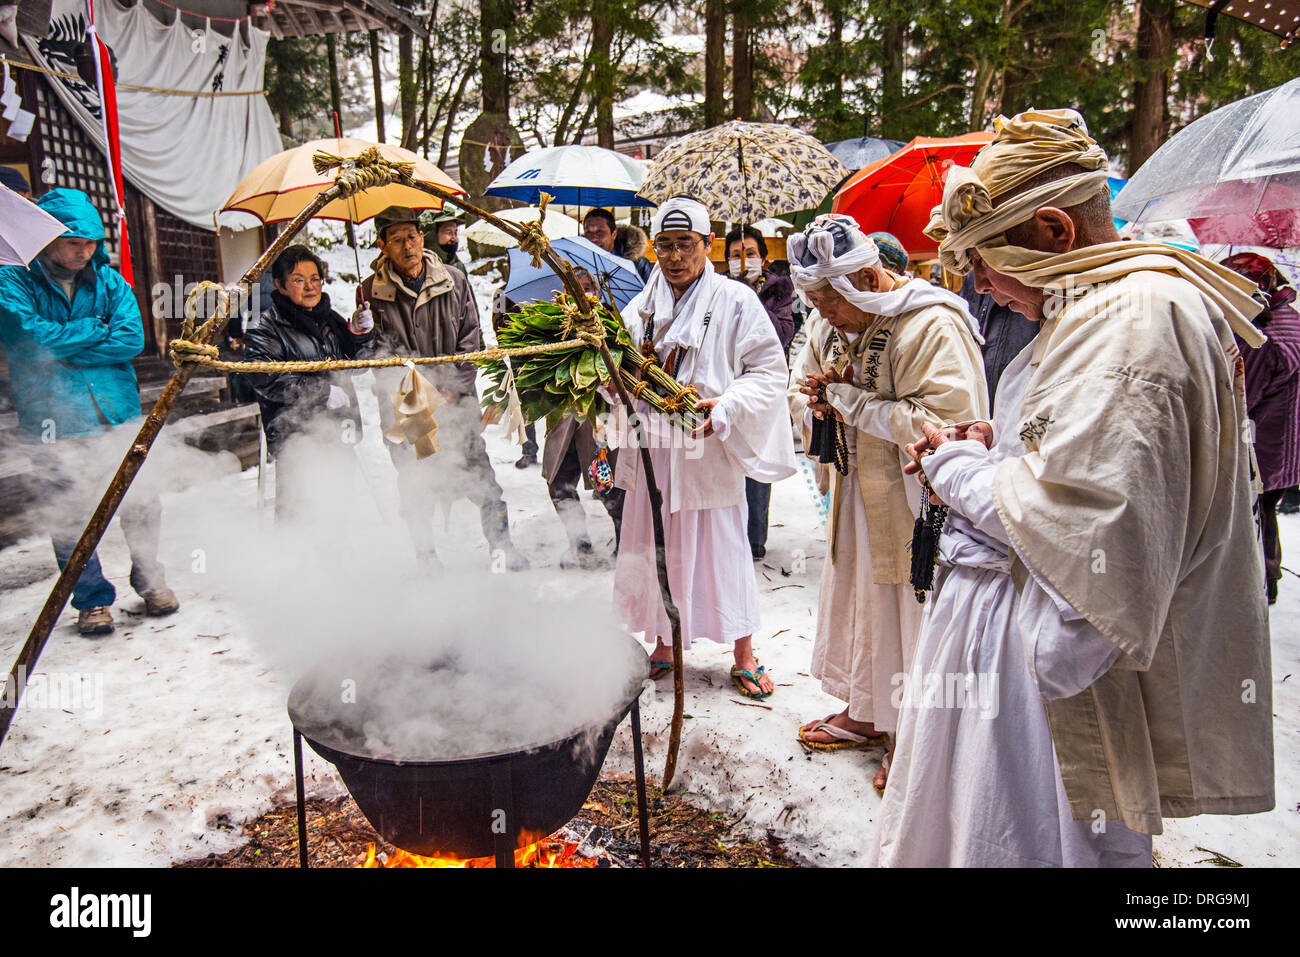 Shinto ascetics perform a ceremony in Nagano, Japan. - Stock Image